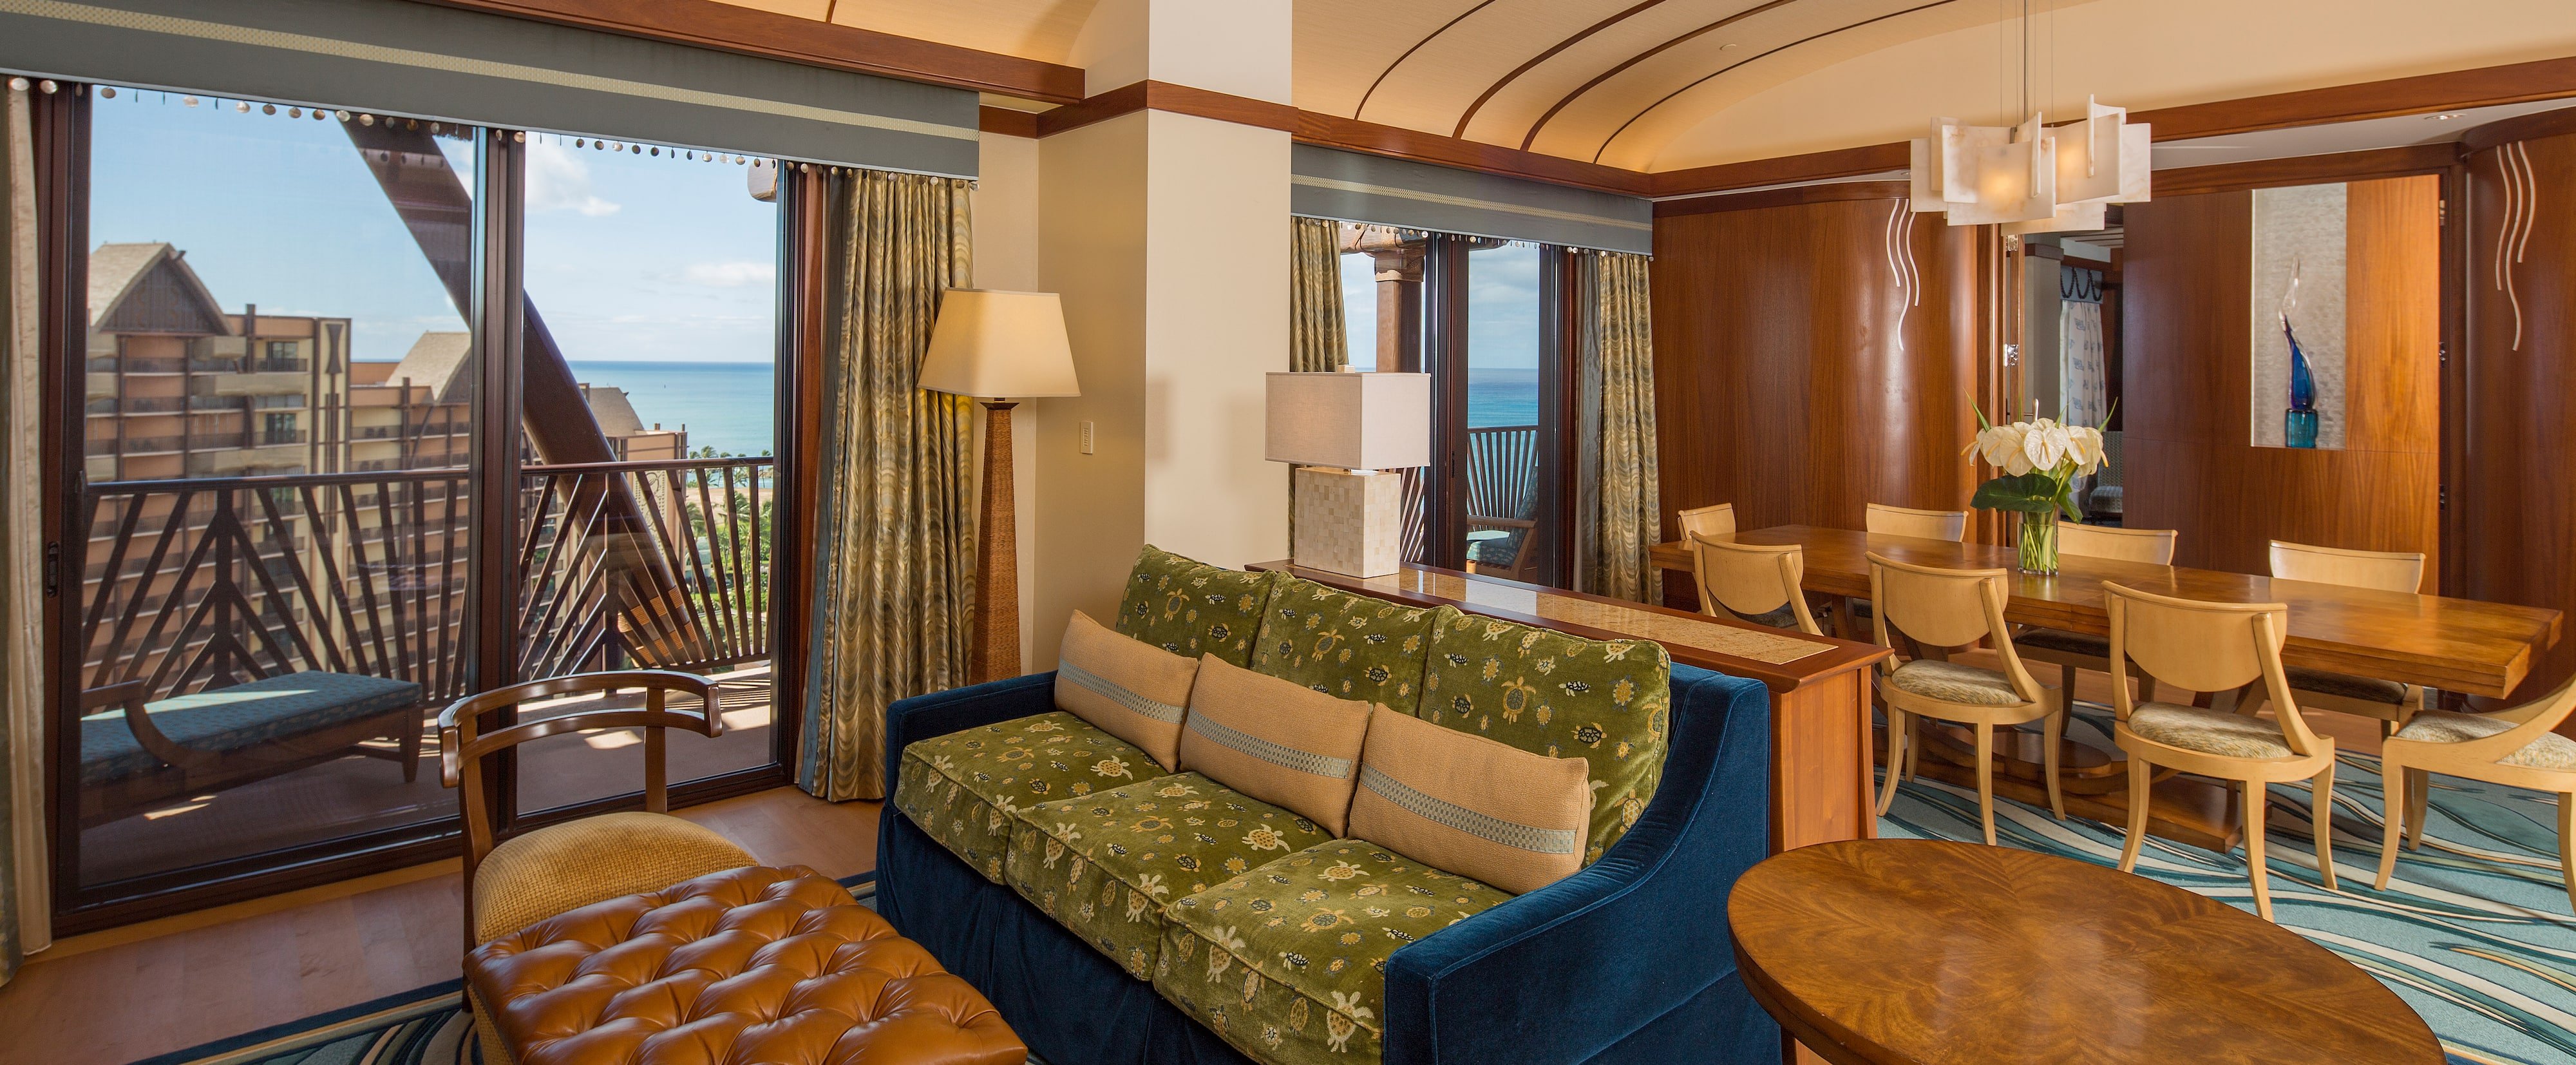 The living area, dining area and entertainment center of the Deluxe 1-Bedroom suite